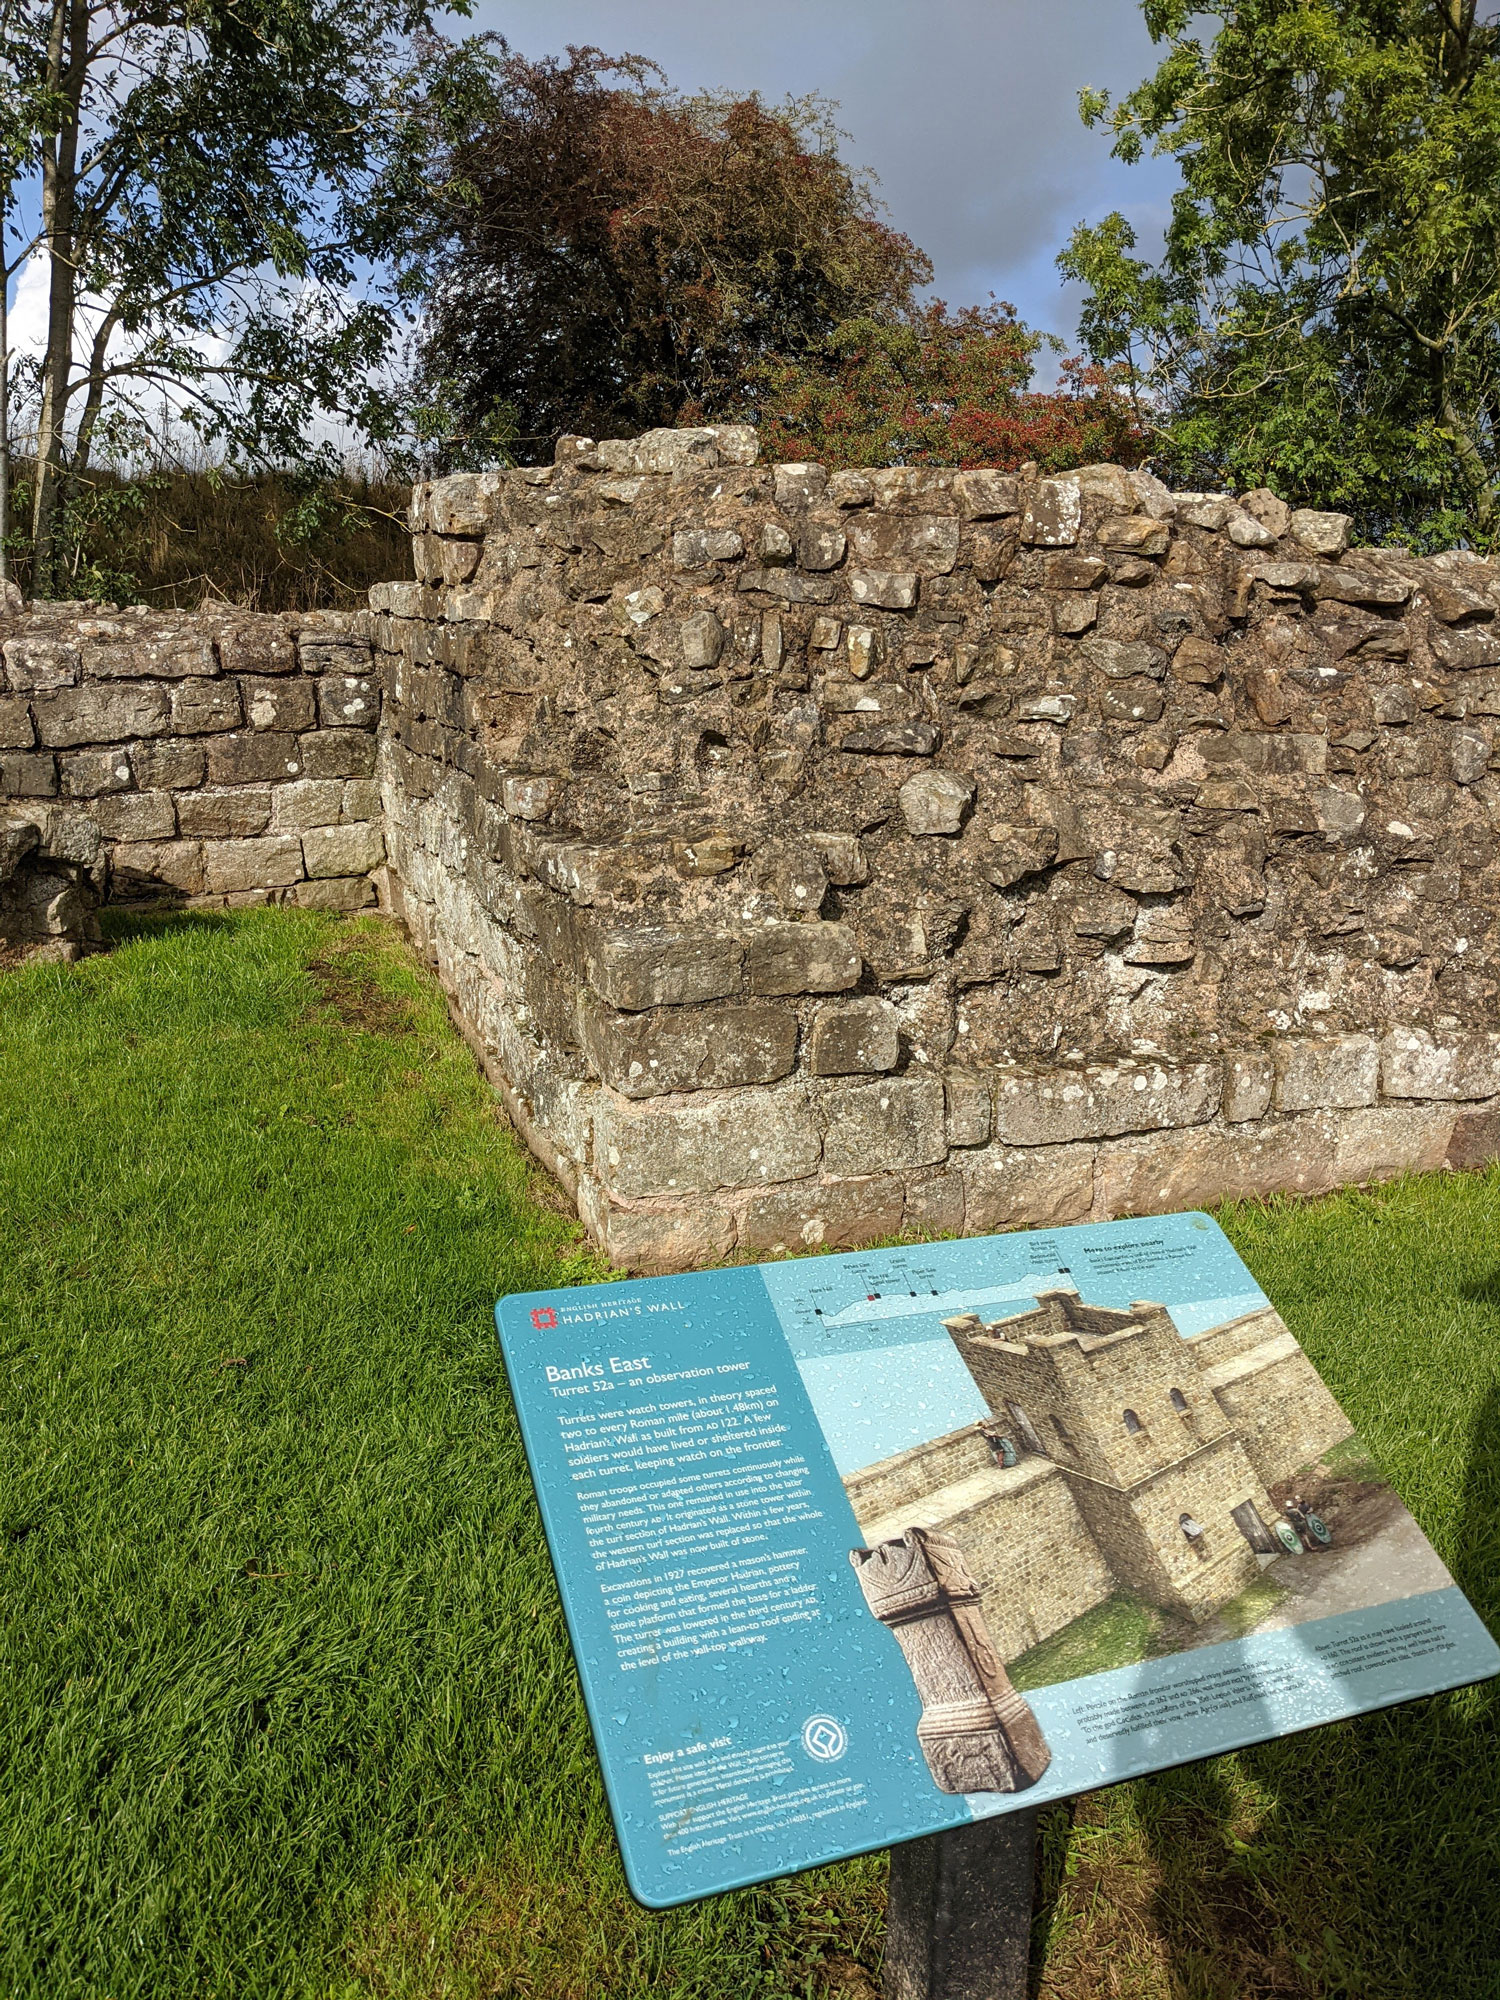 One of the first parts of the Roman wall that you see